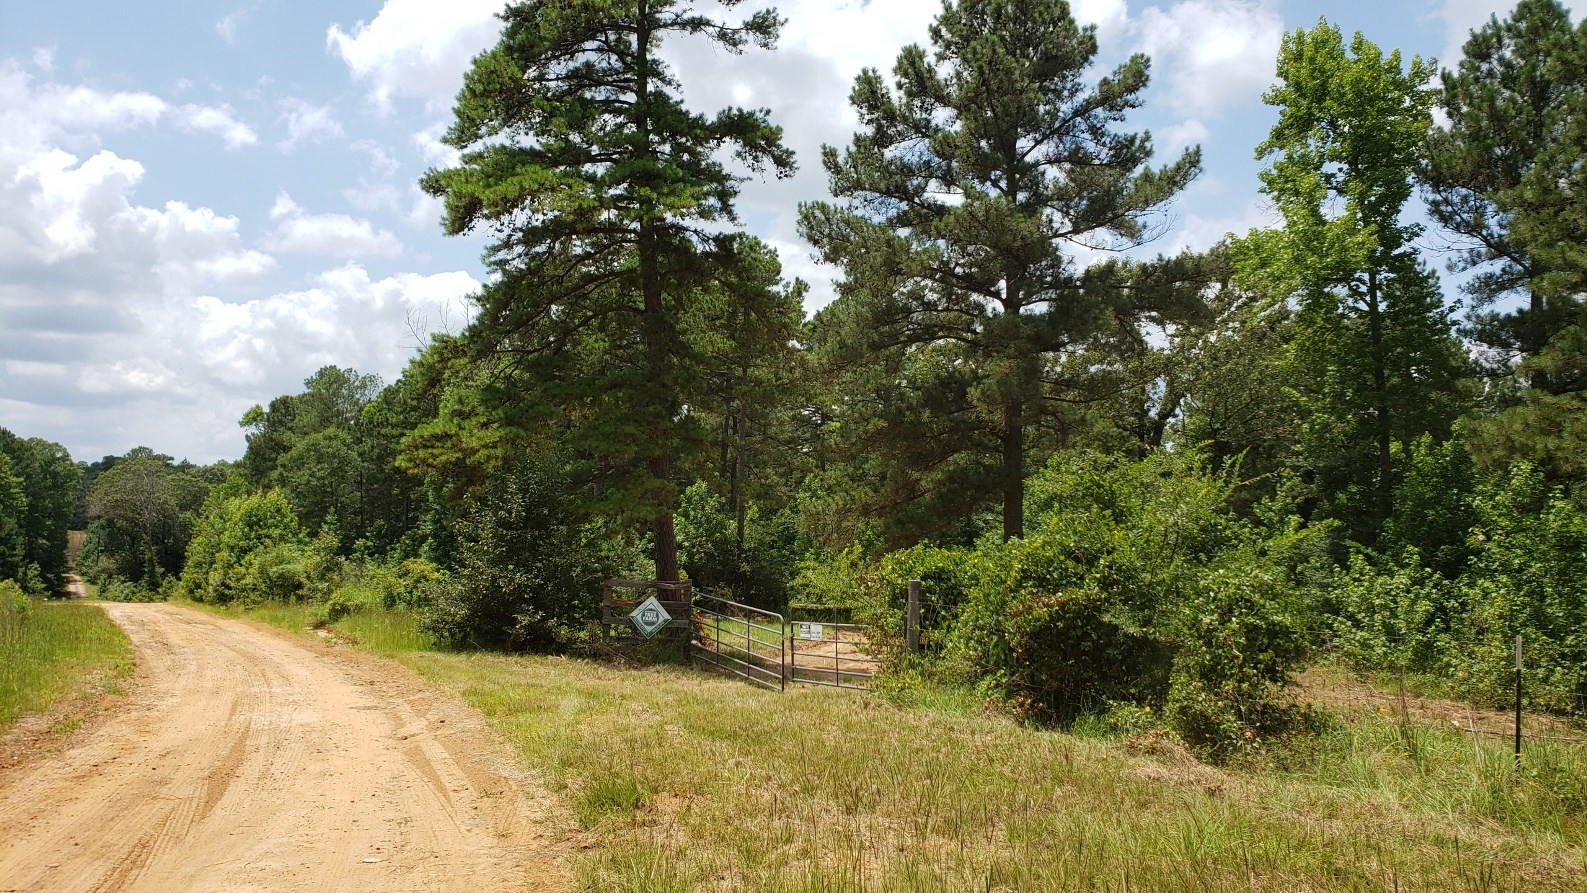 RURAL ACREAGE FOR SALE IN EAST TEXAS